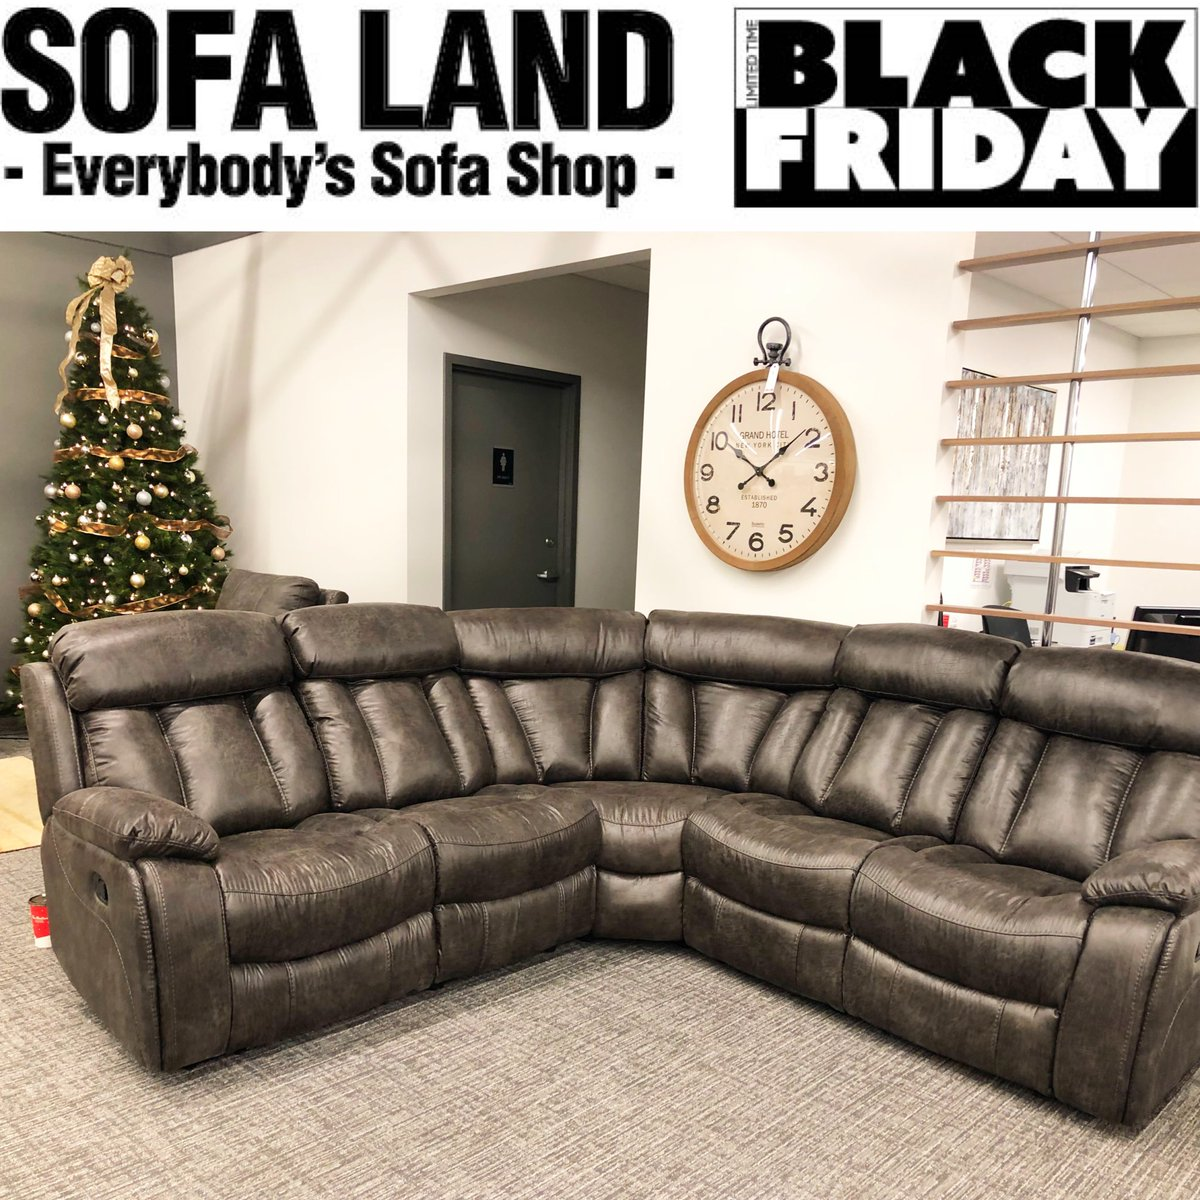 Sofa Land On Twitter Our Black Friday Event Continues Until Monday